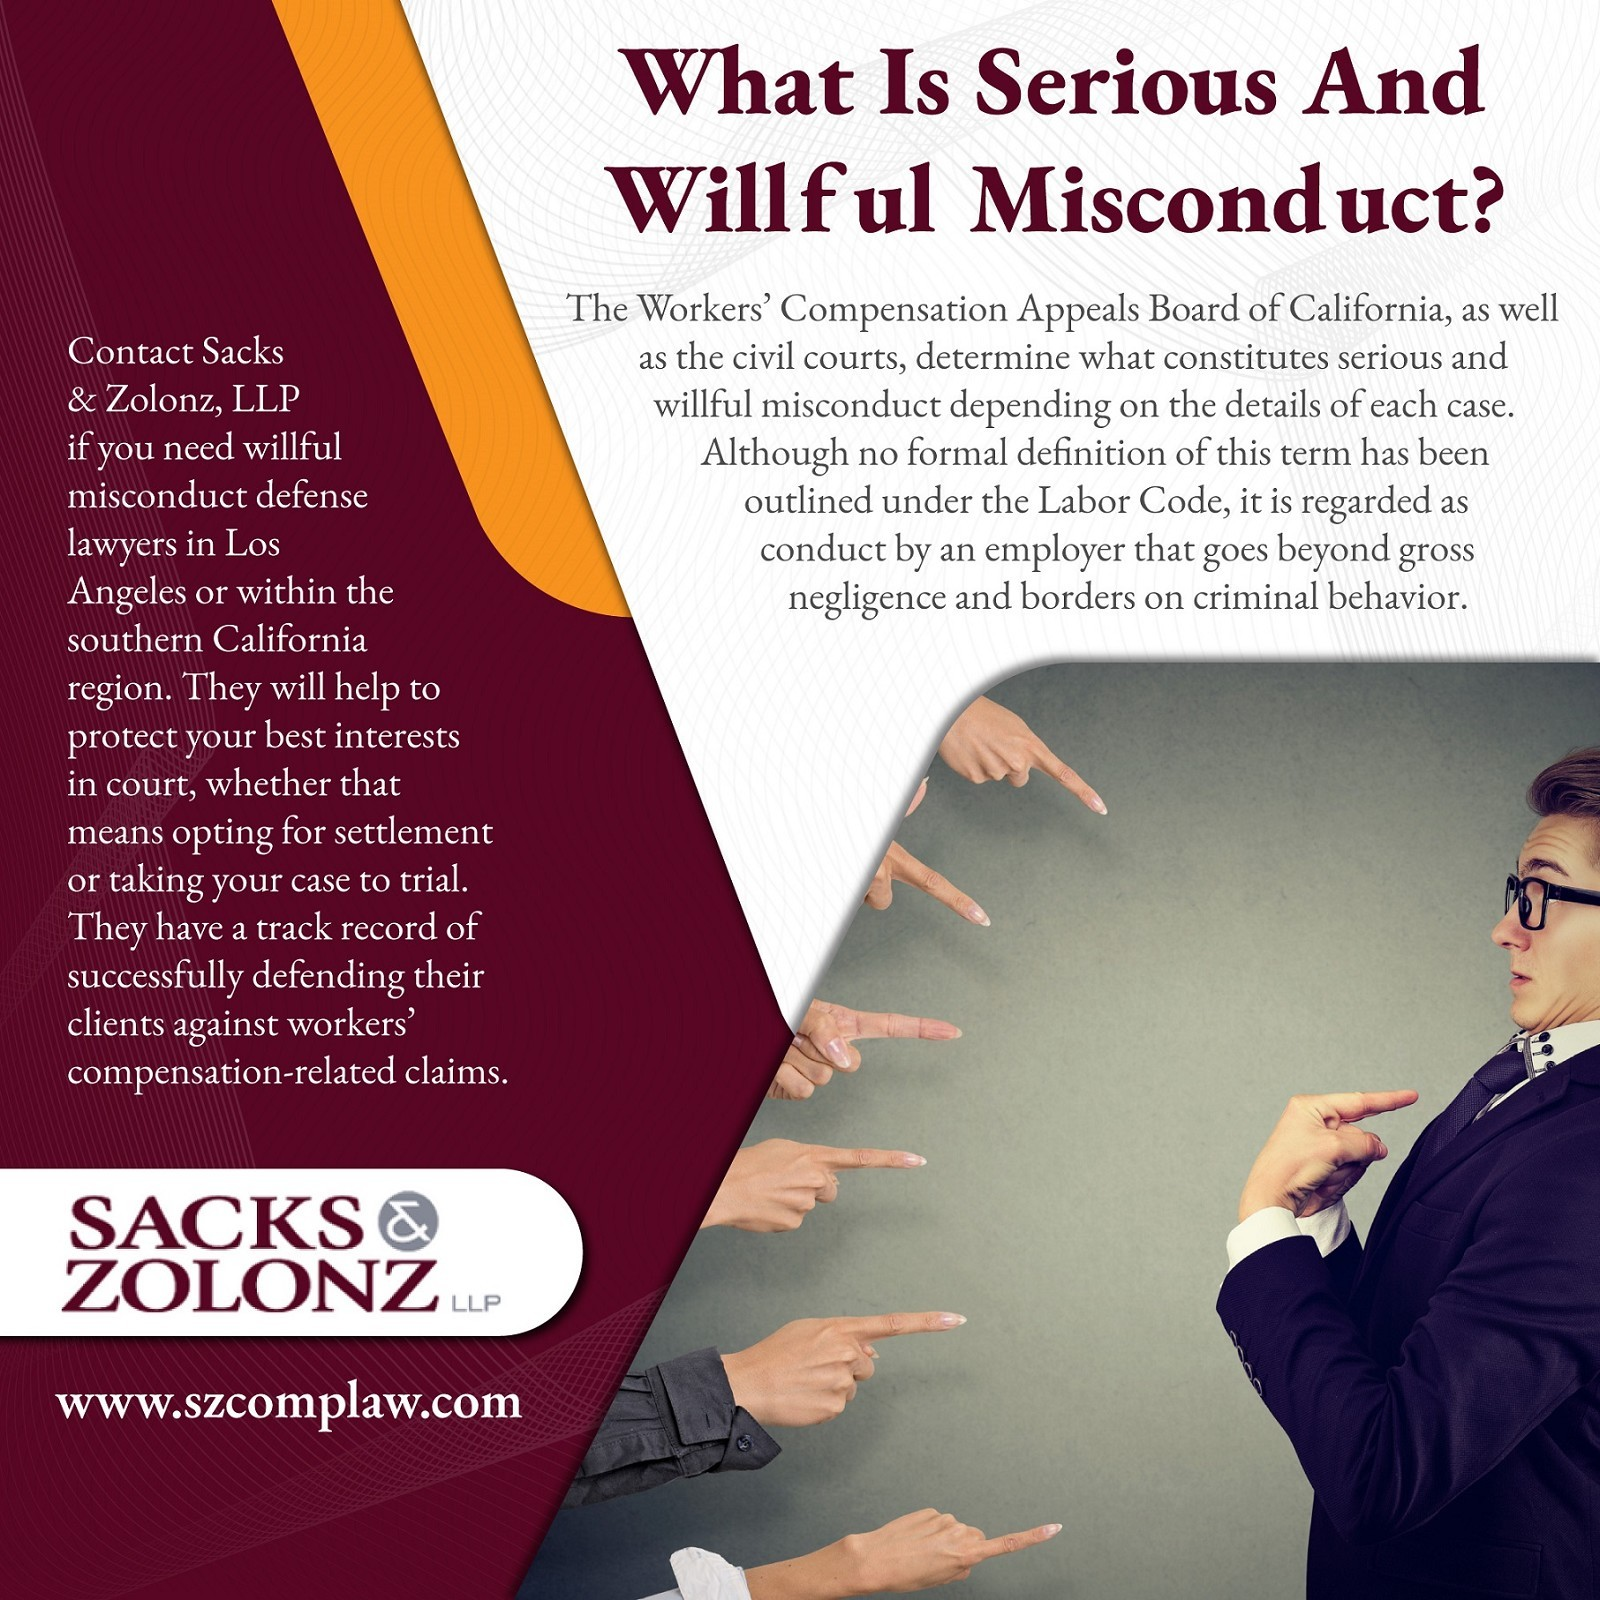 What Is Serious And Willful Misconduct?